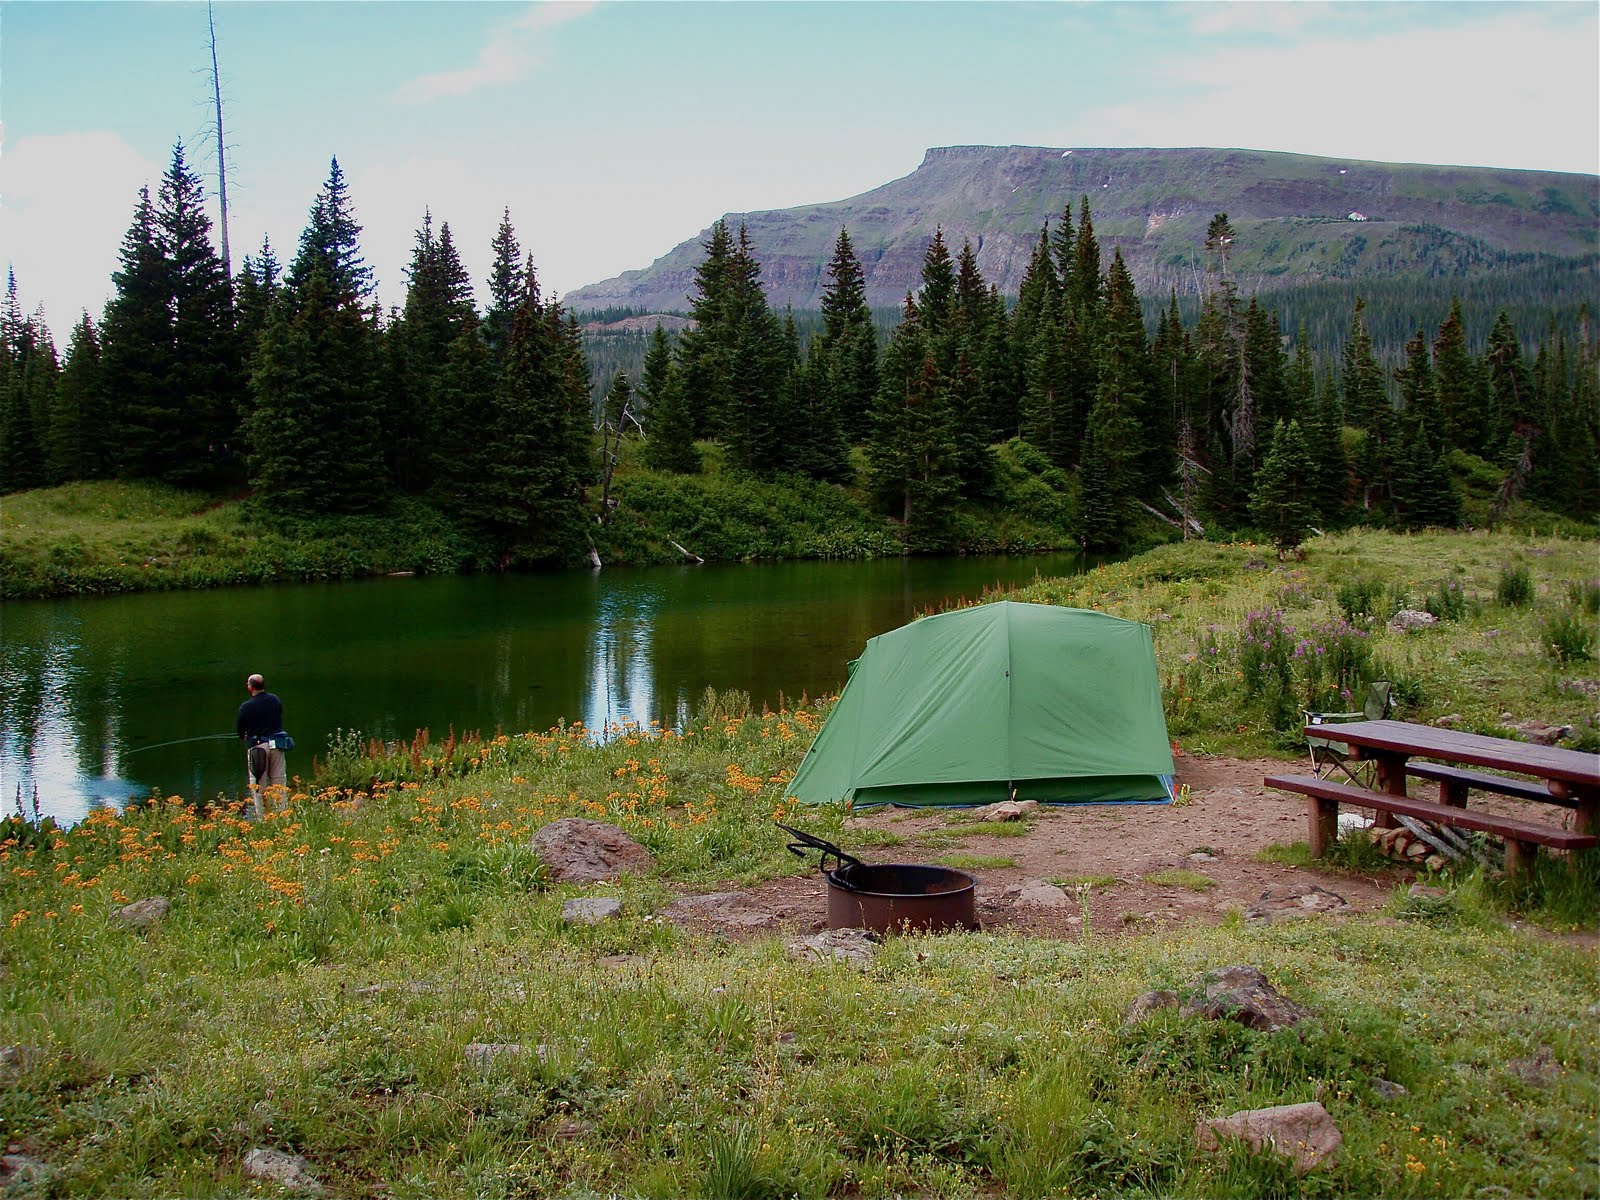 1000+ ideas about Cold Springs Campground on Pinterest ...